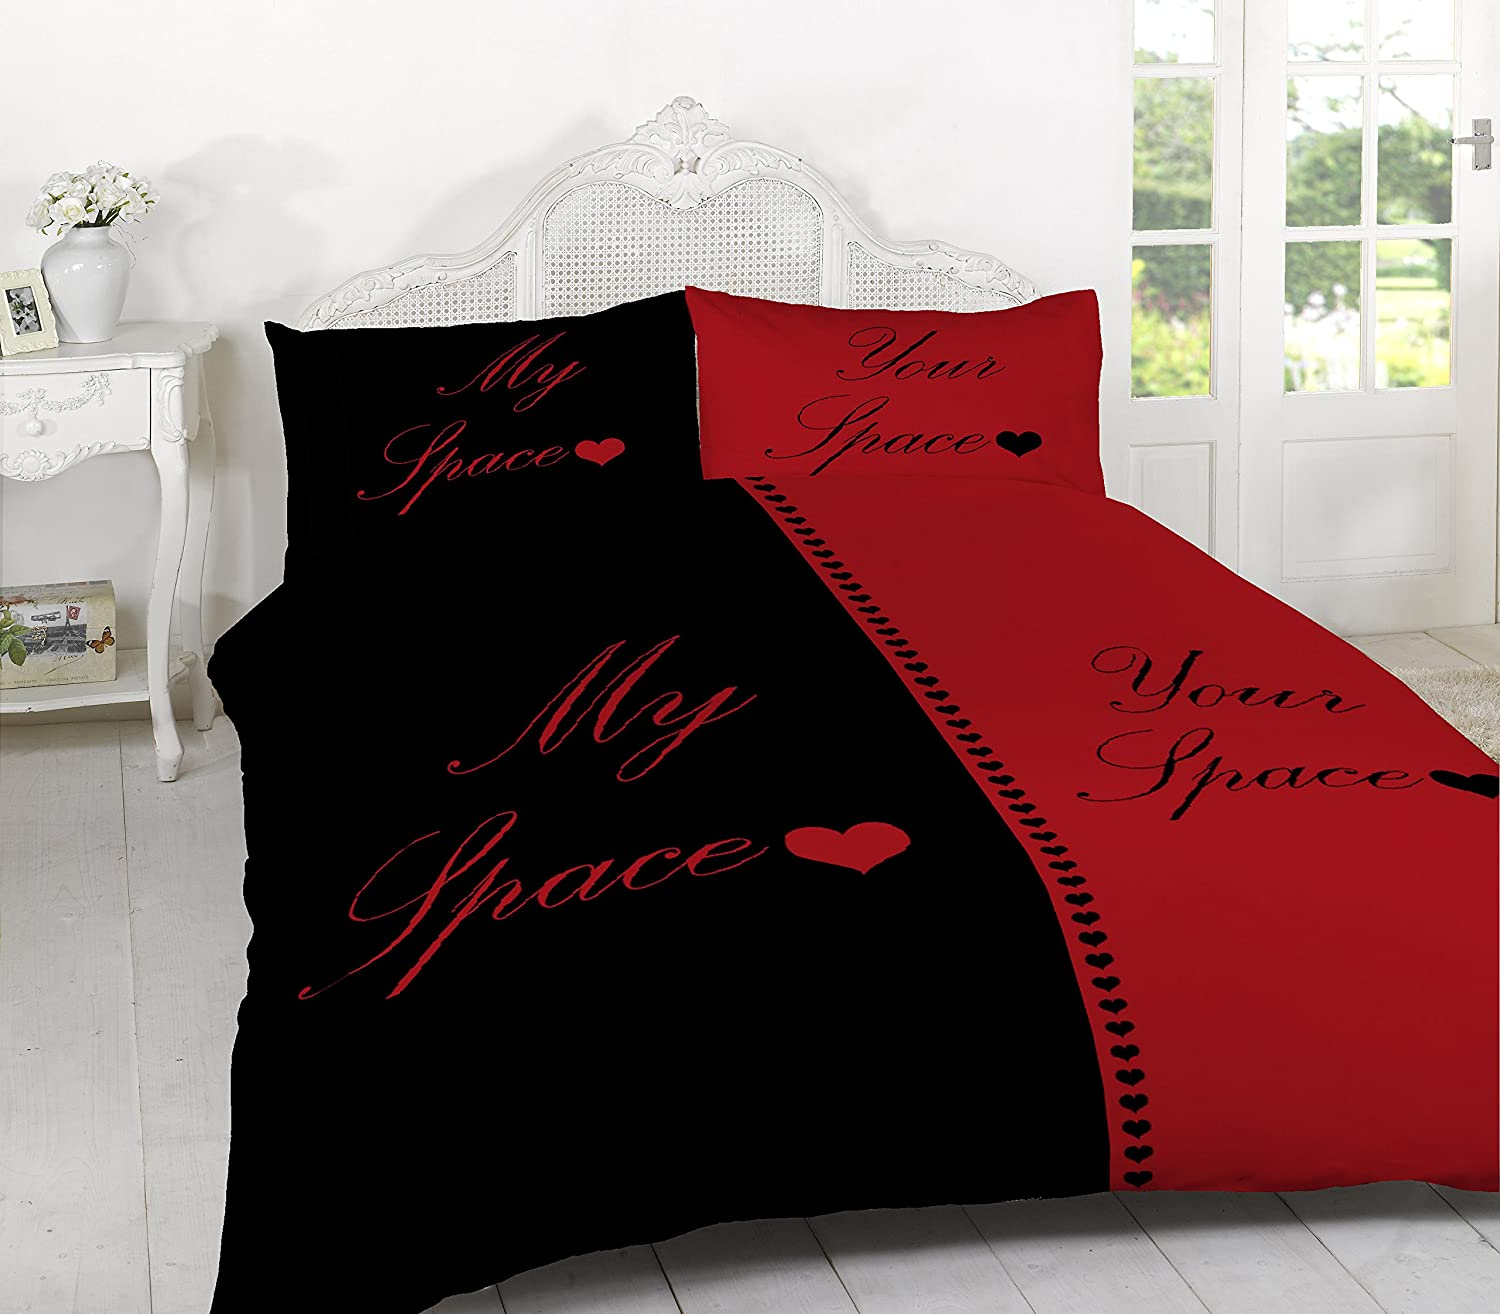 Black and red bedding - My Space Your Space Duvet Set Quilt Cover With Pillow Cases Bedding Sets Black White King Amazon Co Uk Kitchen Home